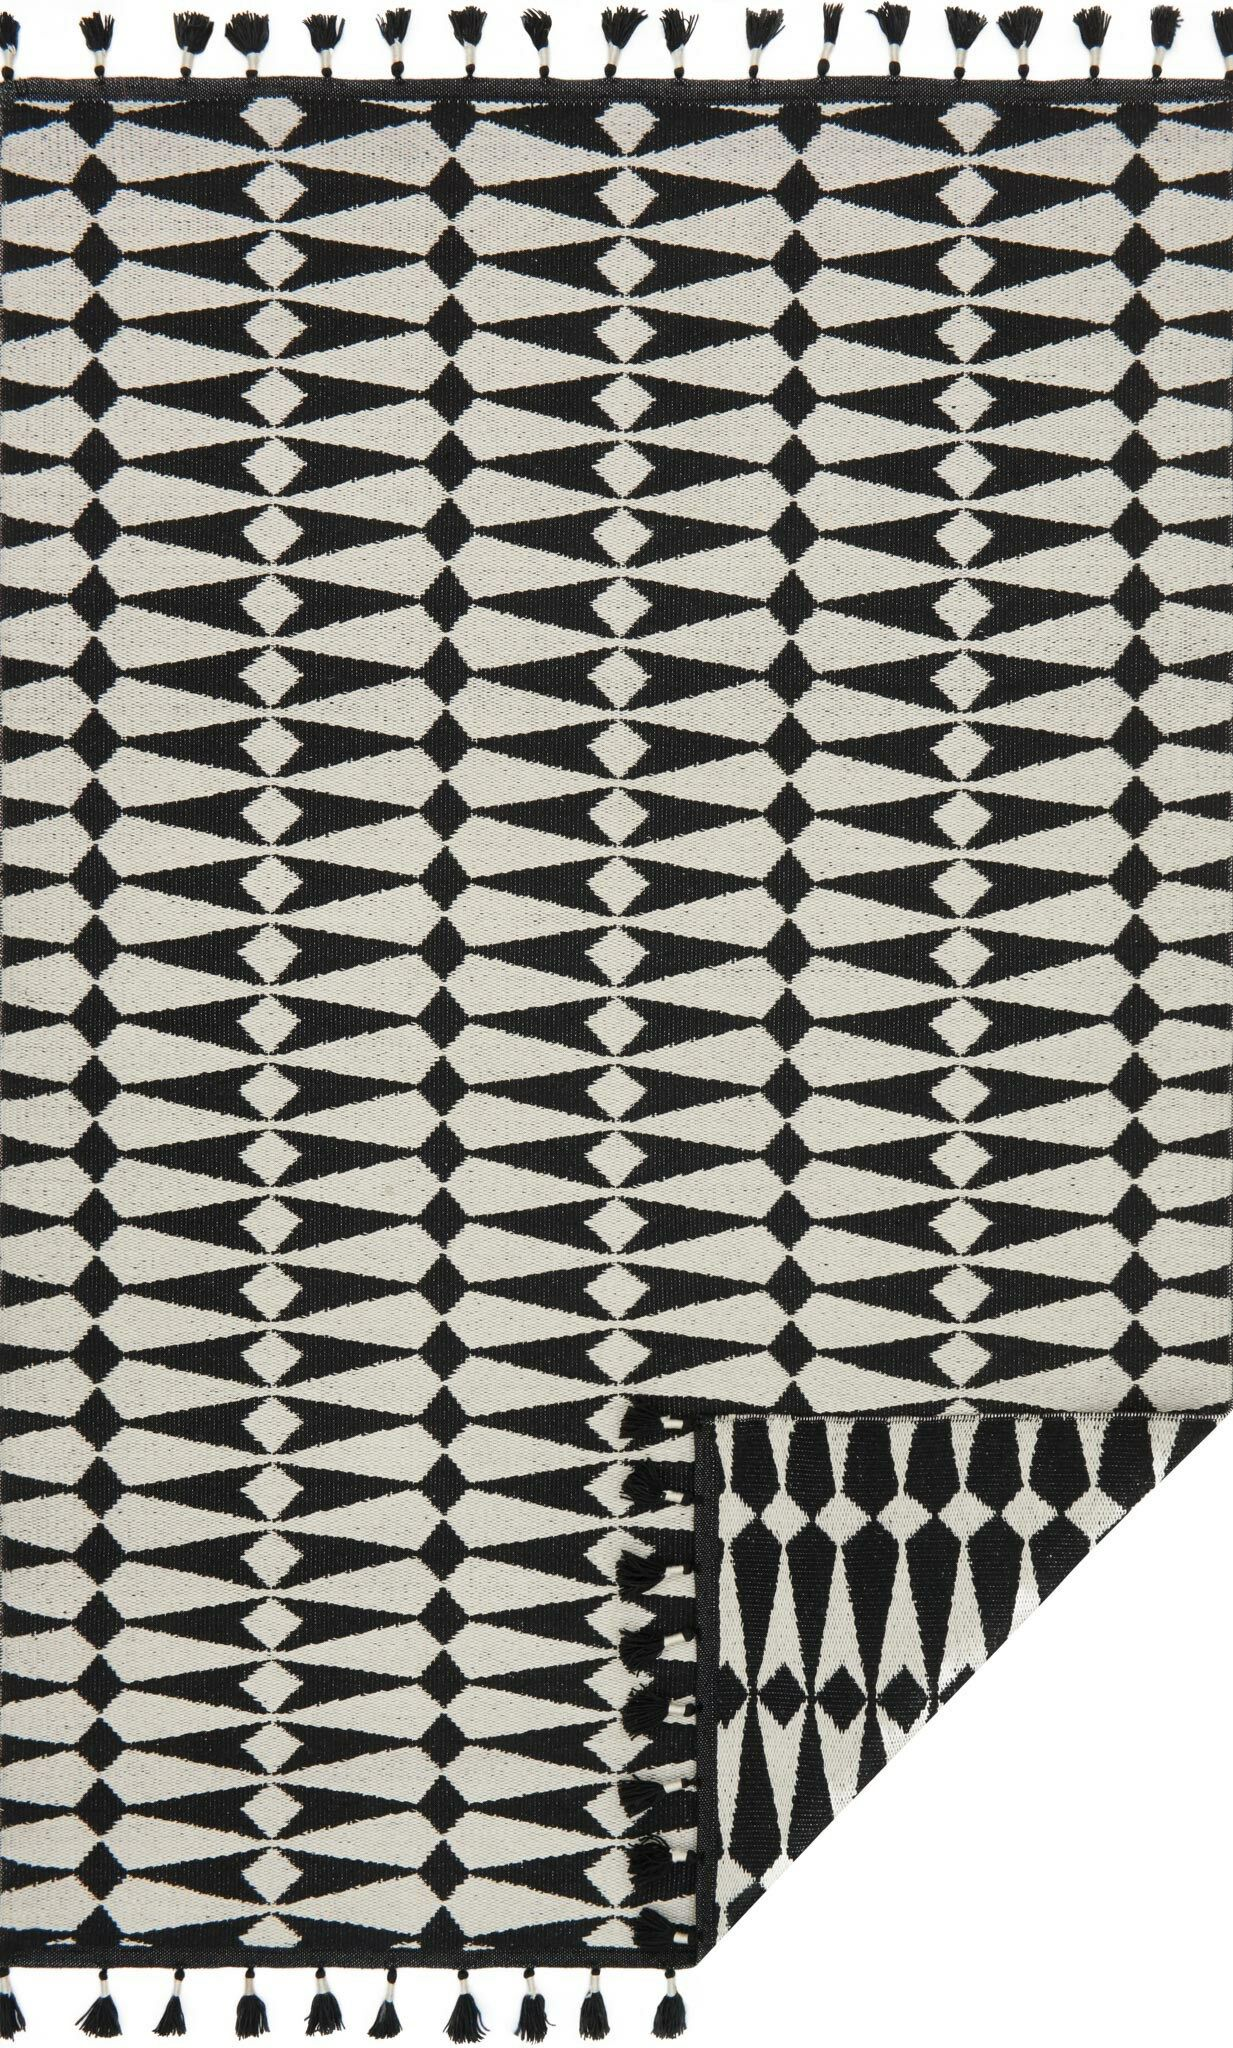 Pangburn Hand-Woven Black/Ivory Area Rug Rug Size: Rectangle 7'9